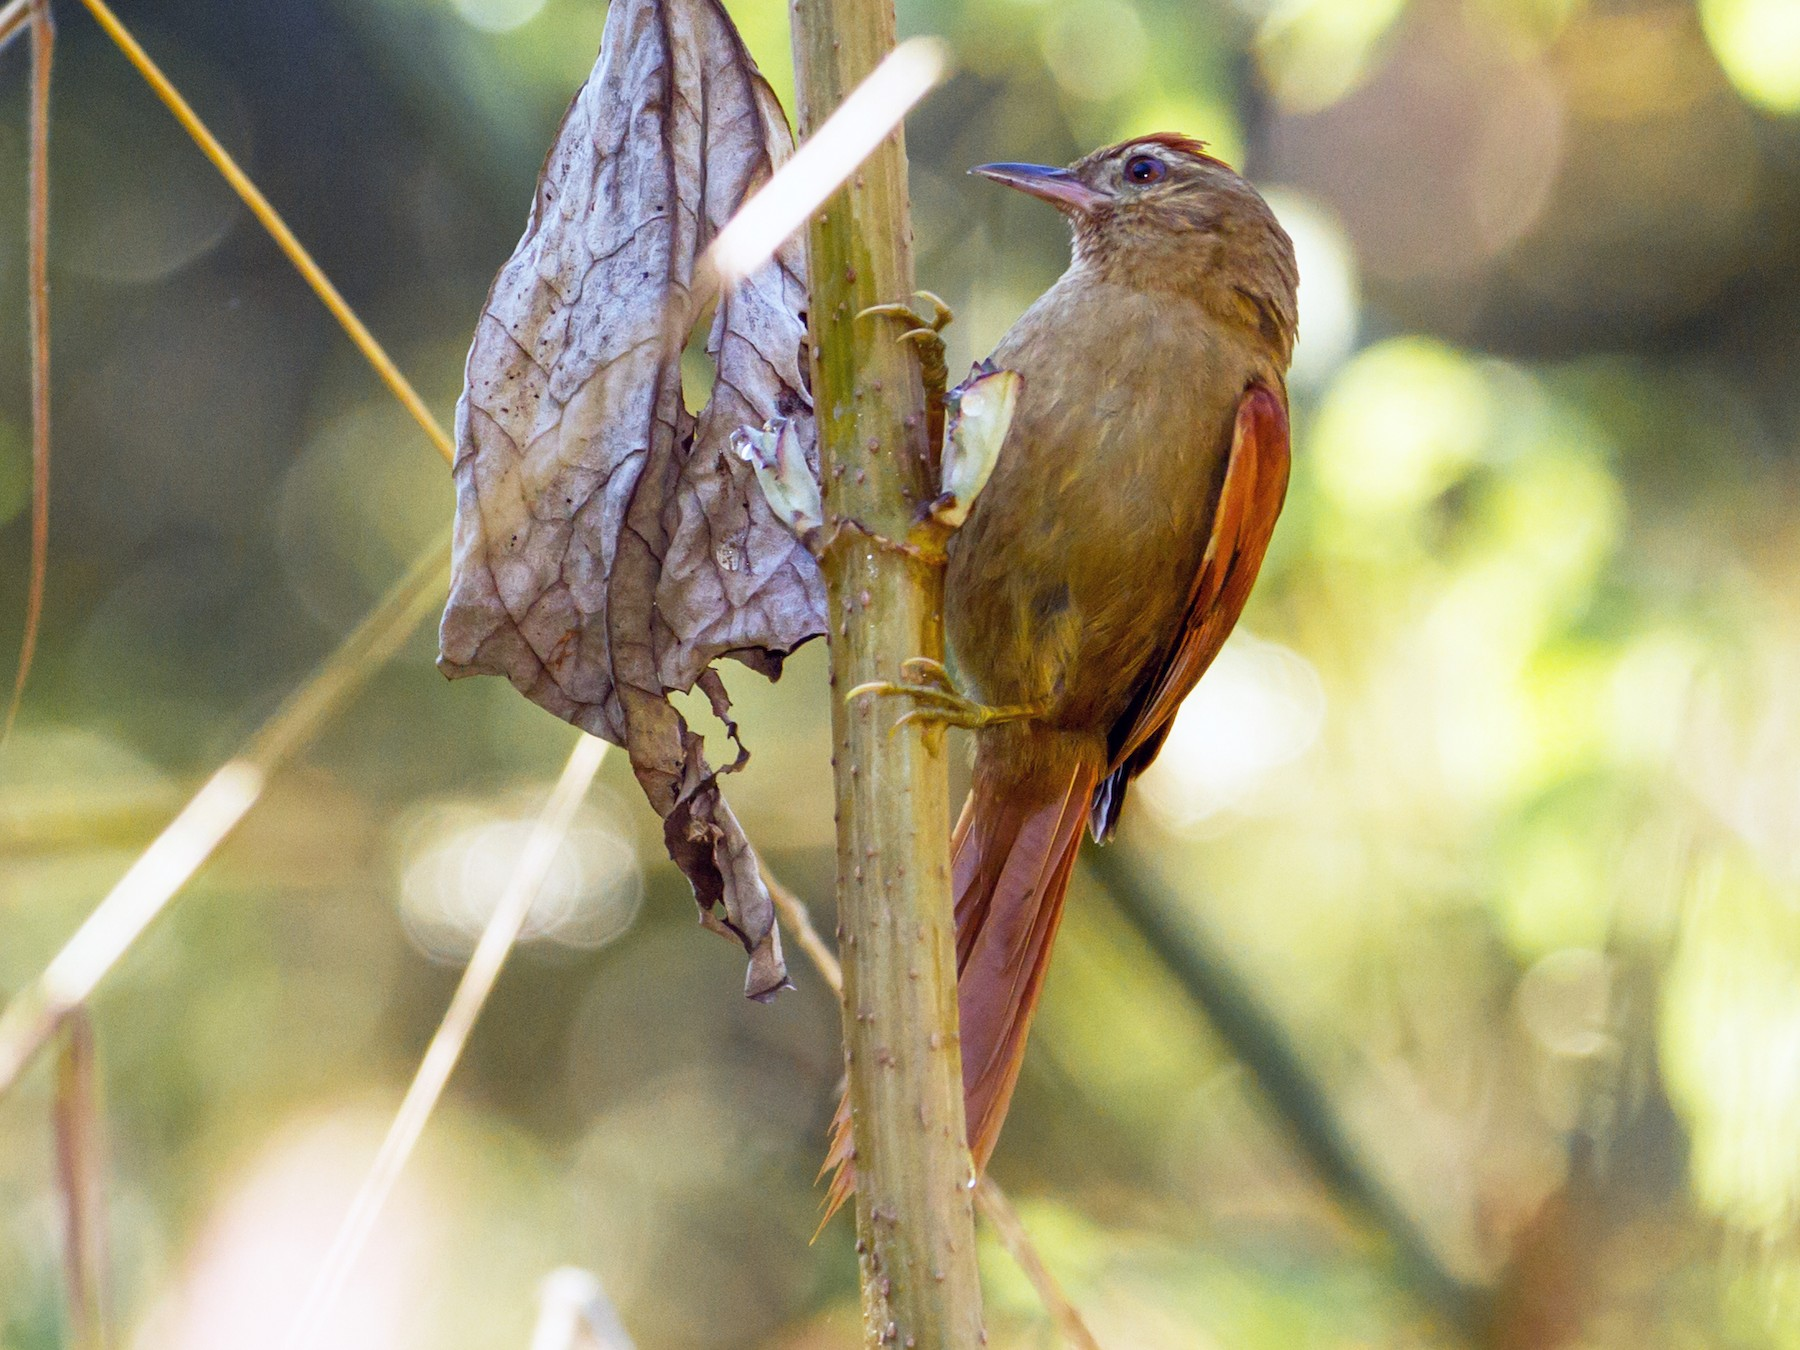 Ash-browed Spinetail - Cullen Hanks